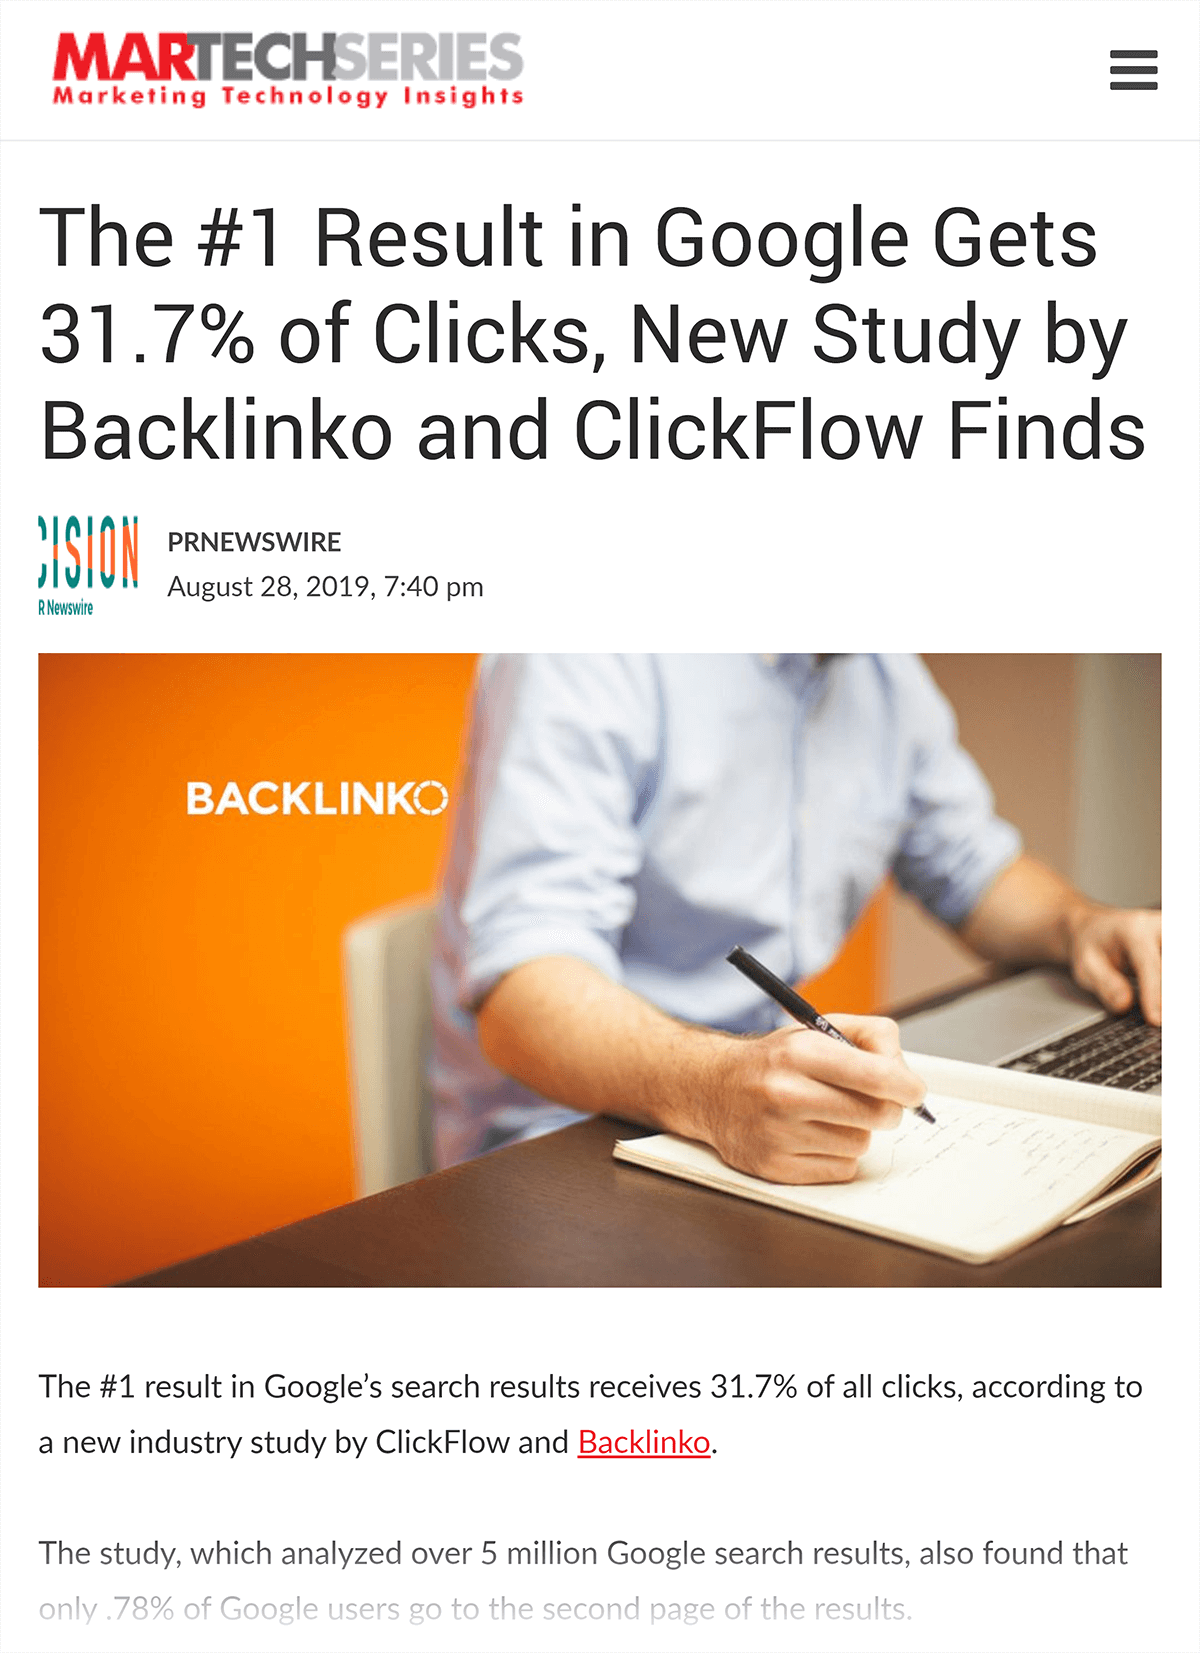 MarTechSeries – Backlinko study article